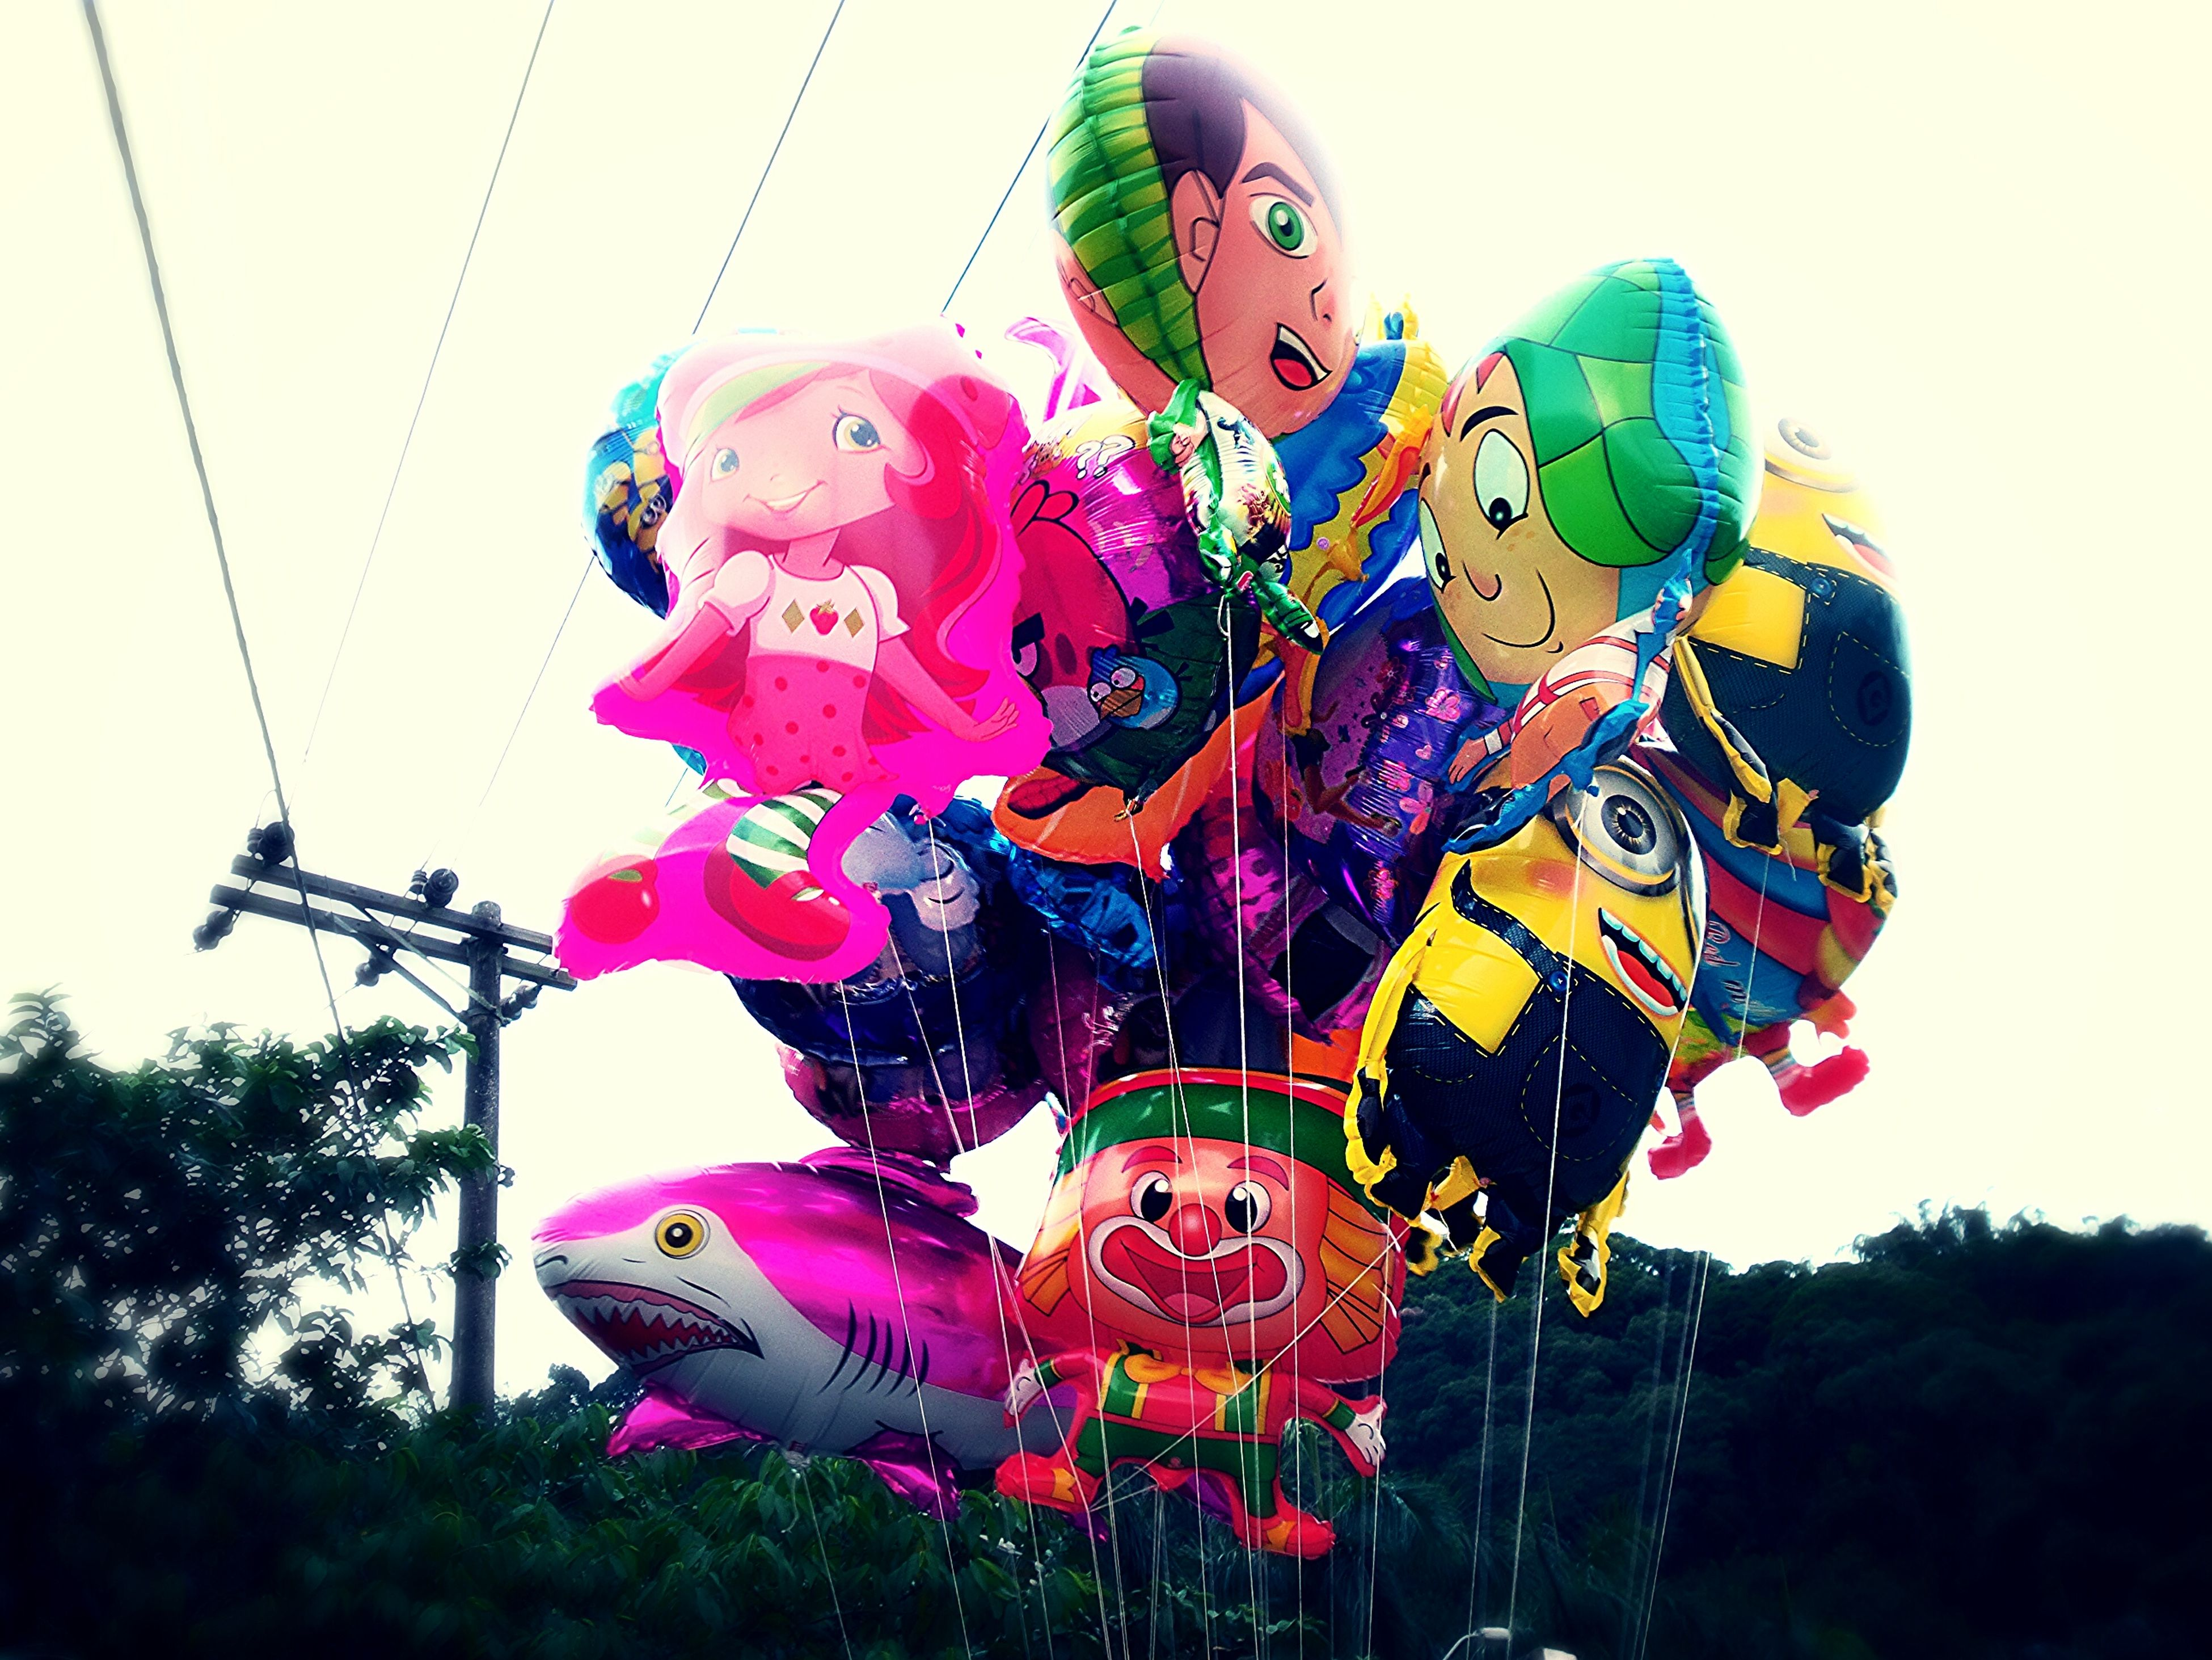 art and craft, art, human representation, creativity, low angle view, sculpture, arts culture and entertainment, amusement park, animal representation, cultures, amusement park ride, celebration, statue, multi colored, tradition, decoration, clear sky, sky